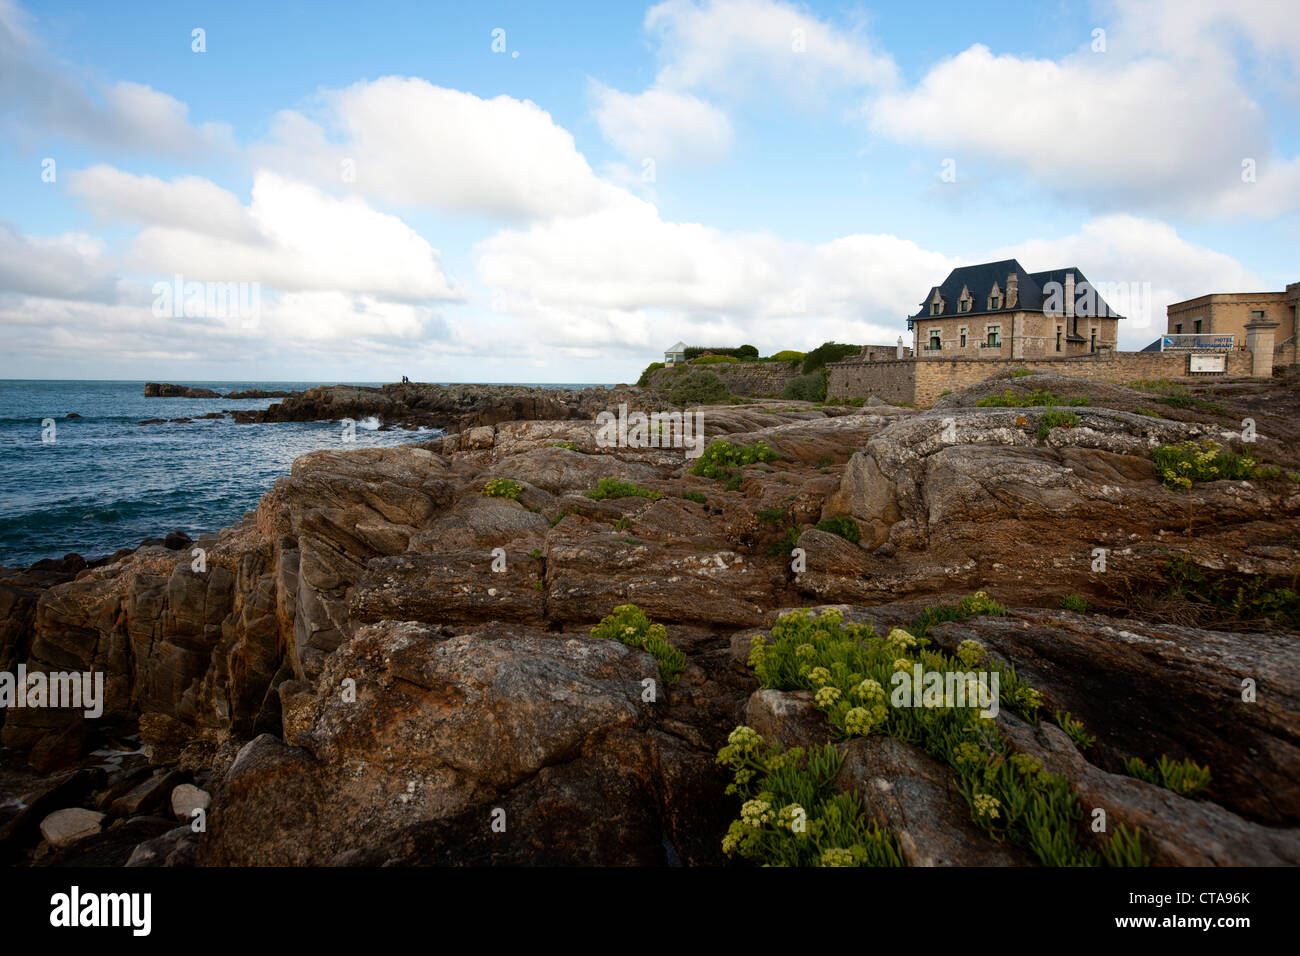 Hotel at Atlantic coast, Le Croisic, Loire-Atlantique, Pays de la Loire, France Stock Photo